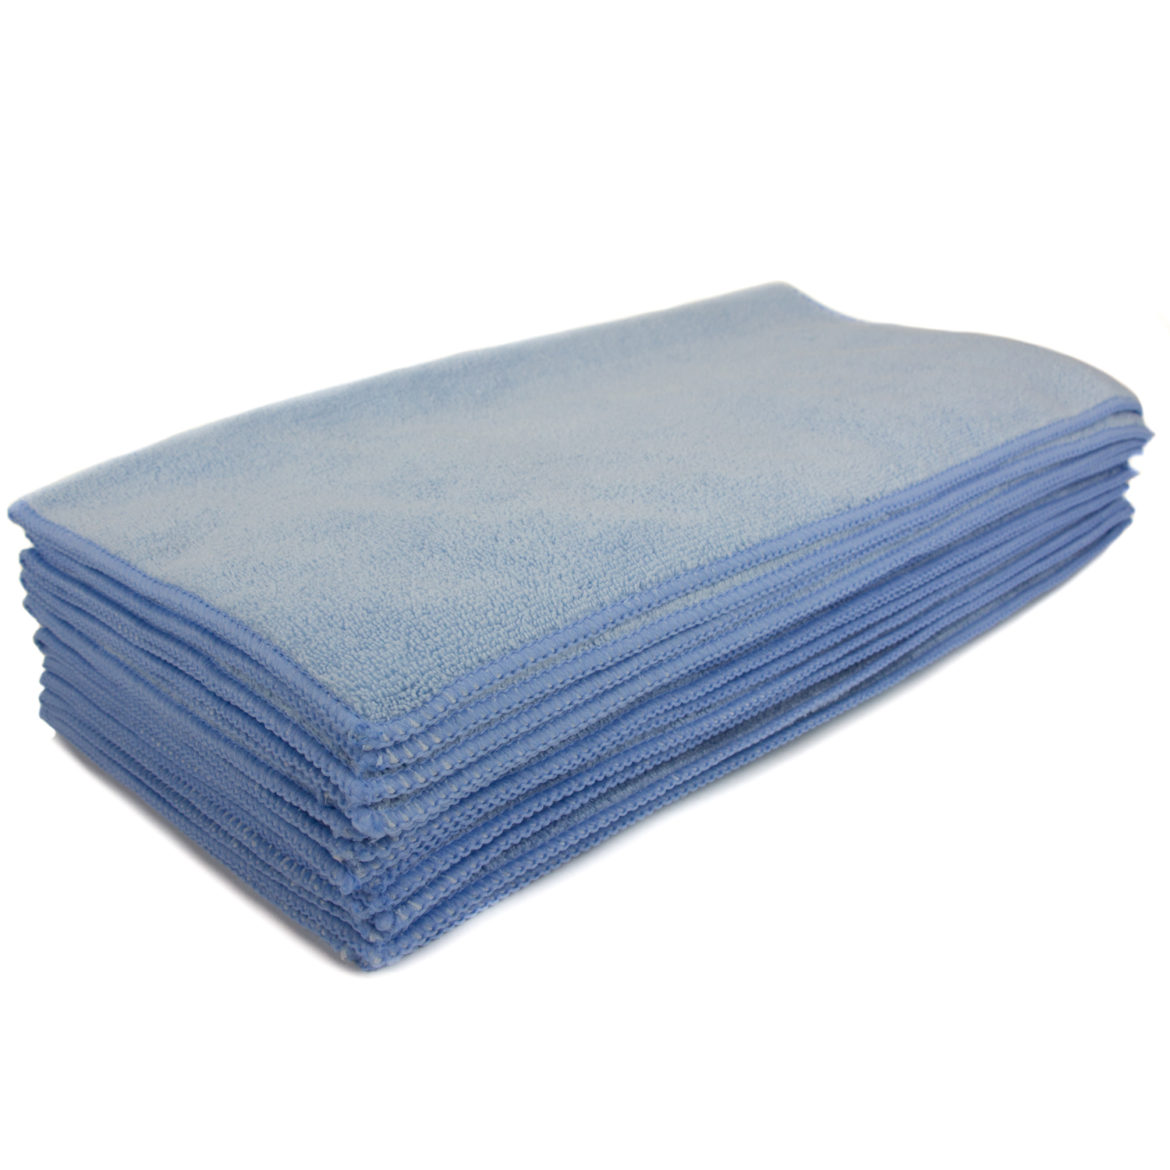 "Blue Microfiber Cleaning Towel 16 x 16"", Package Of 12"